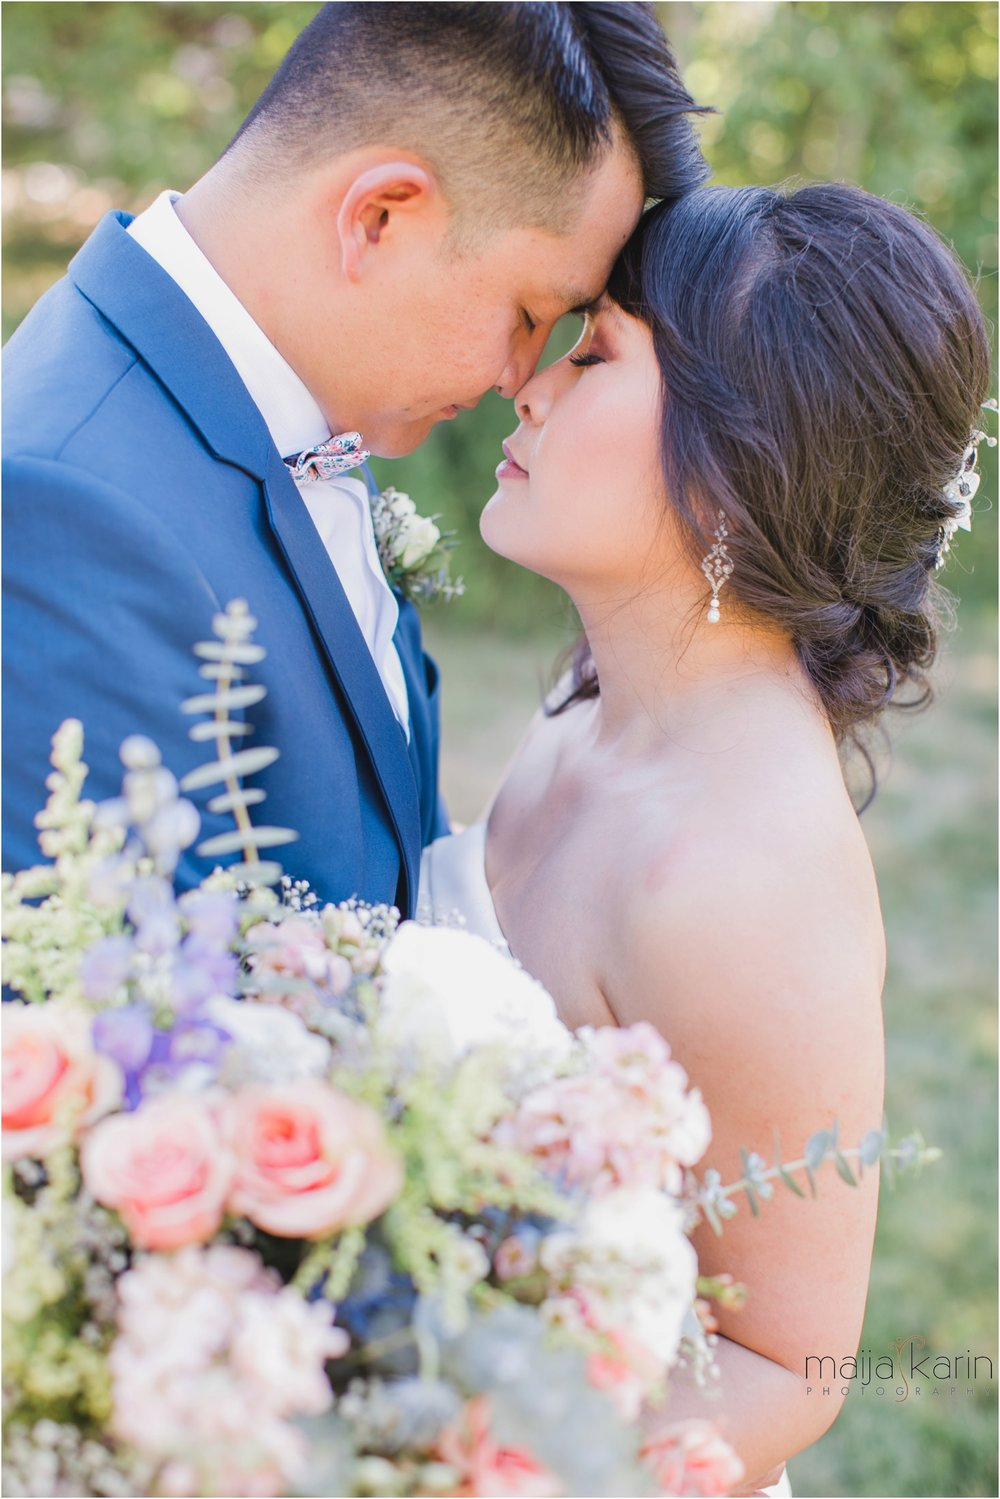 Mountain-Springs-Lodge-Leavenworth-Washington-Wedding-Photographer-Majiin-Karin-Photography_43.jpg